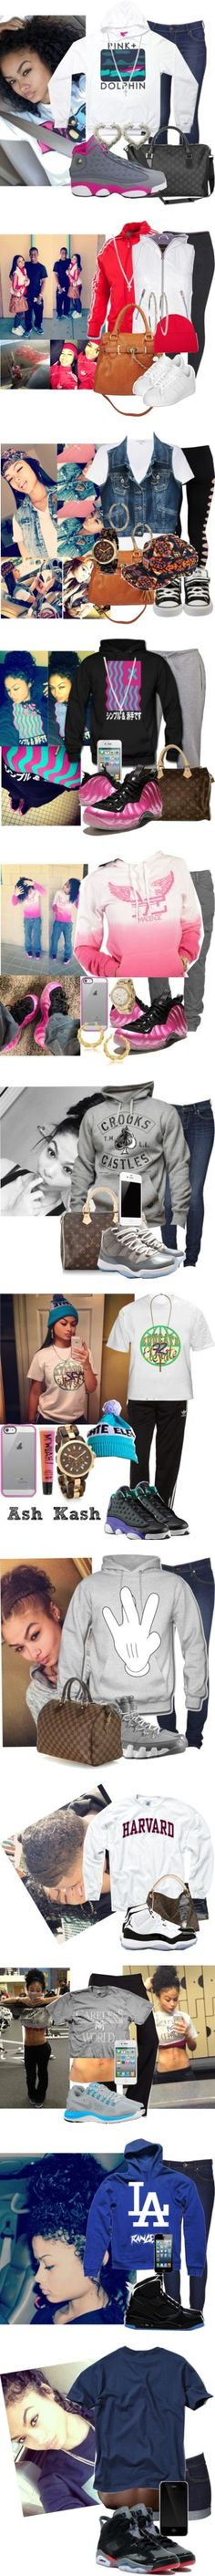 """""""India Love Westbrook (Part 3.)"""" by fashionsetstyler ❤ liked on Polyvore"""